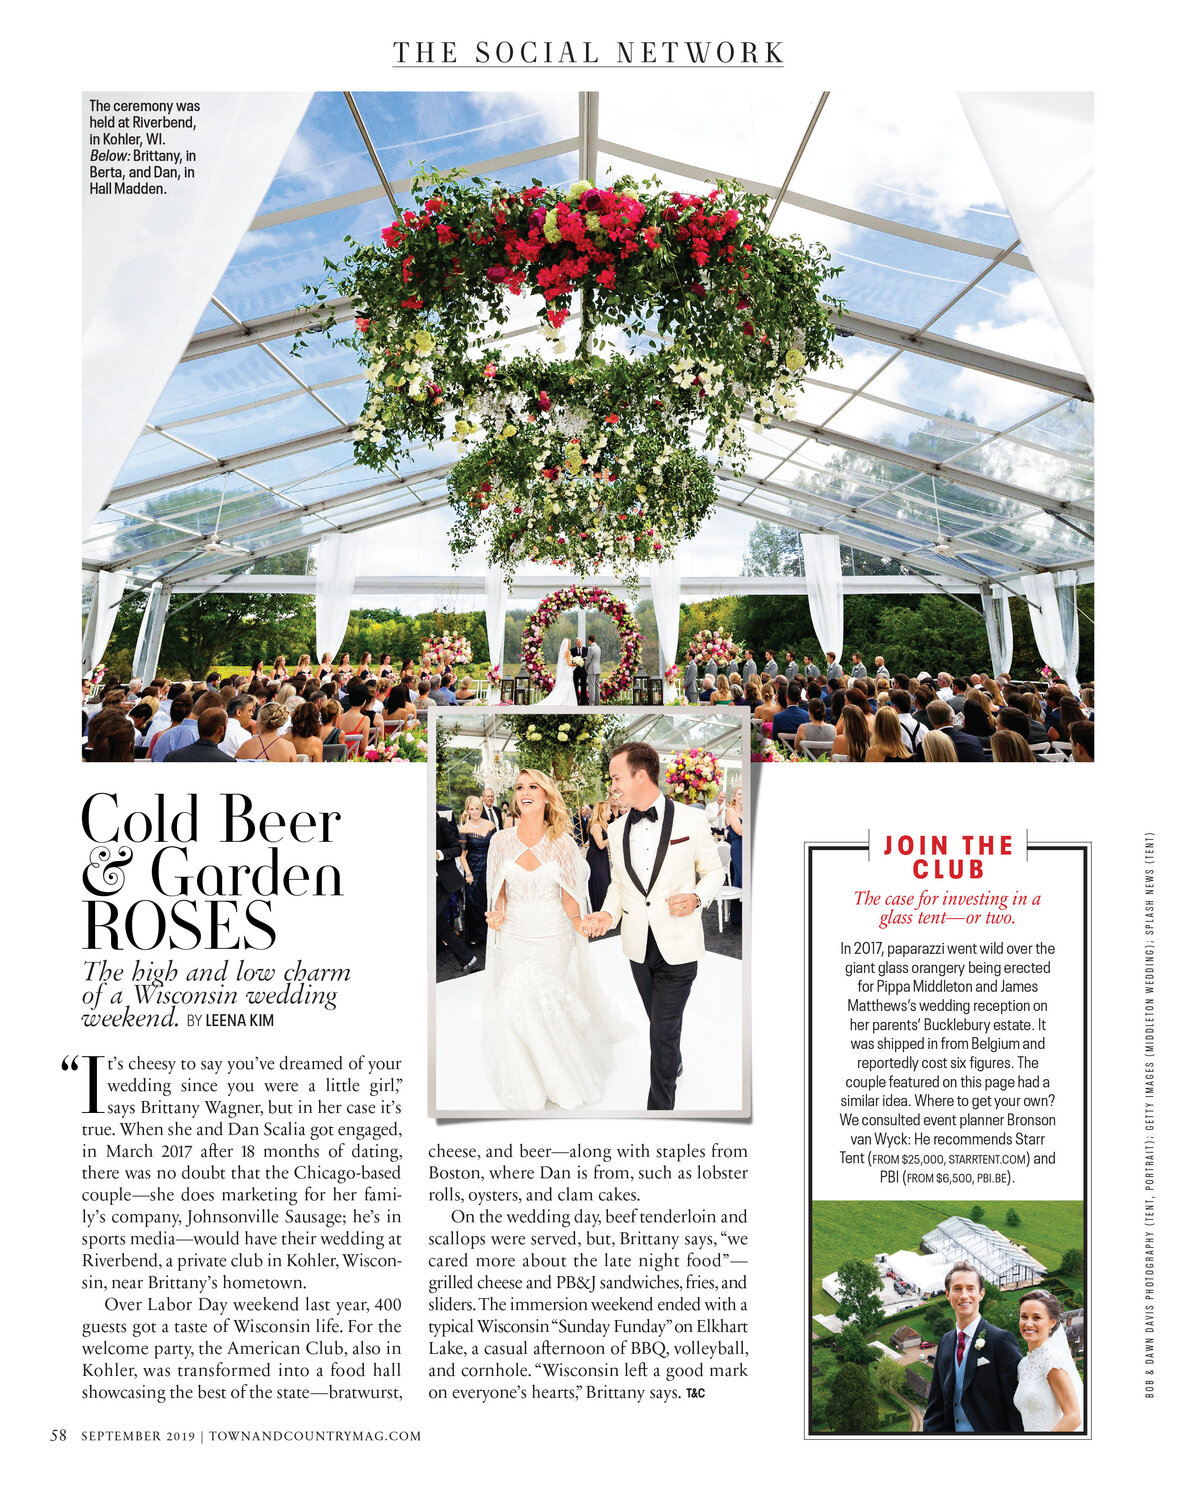 We love seeing Brittany and Dan's wedding at Riverbend in Kohler, WI in the September 2019 edition of Town&Country. This incredible wedding was designed by the exceptionally talented, Vince Hart of Kehoe Designs. He knocked this out of the park with his extraordinary team! And who doesn't LOVE when Zac Brown Band is the surprise entertainment? So fun  Click here for a list of vendors.